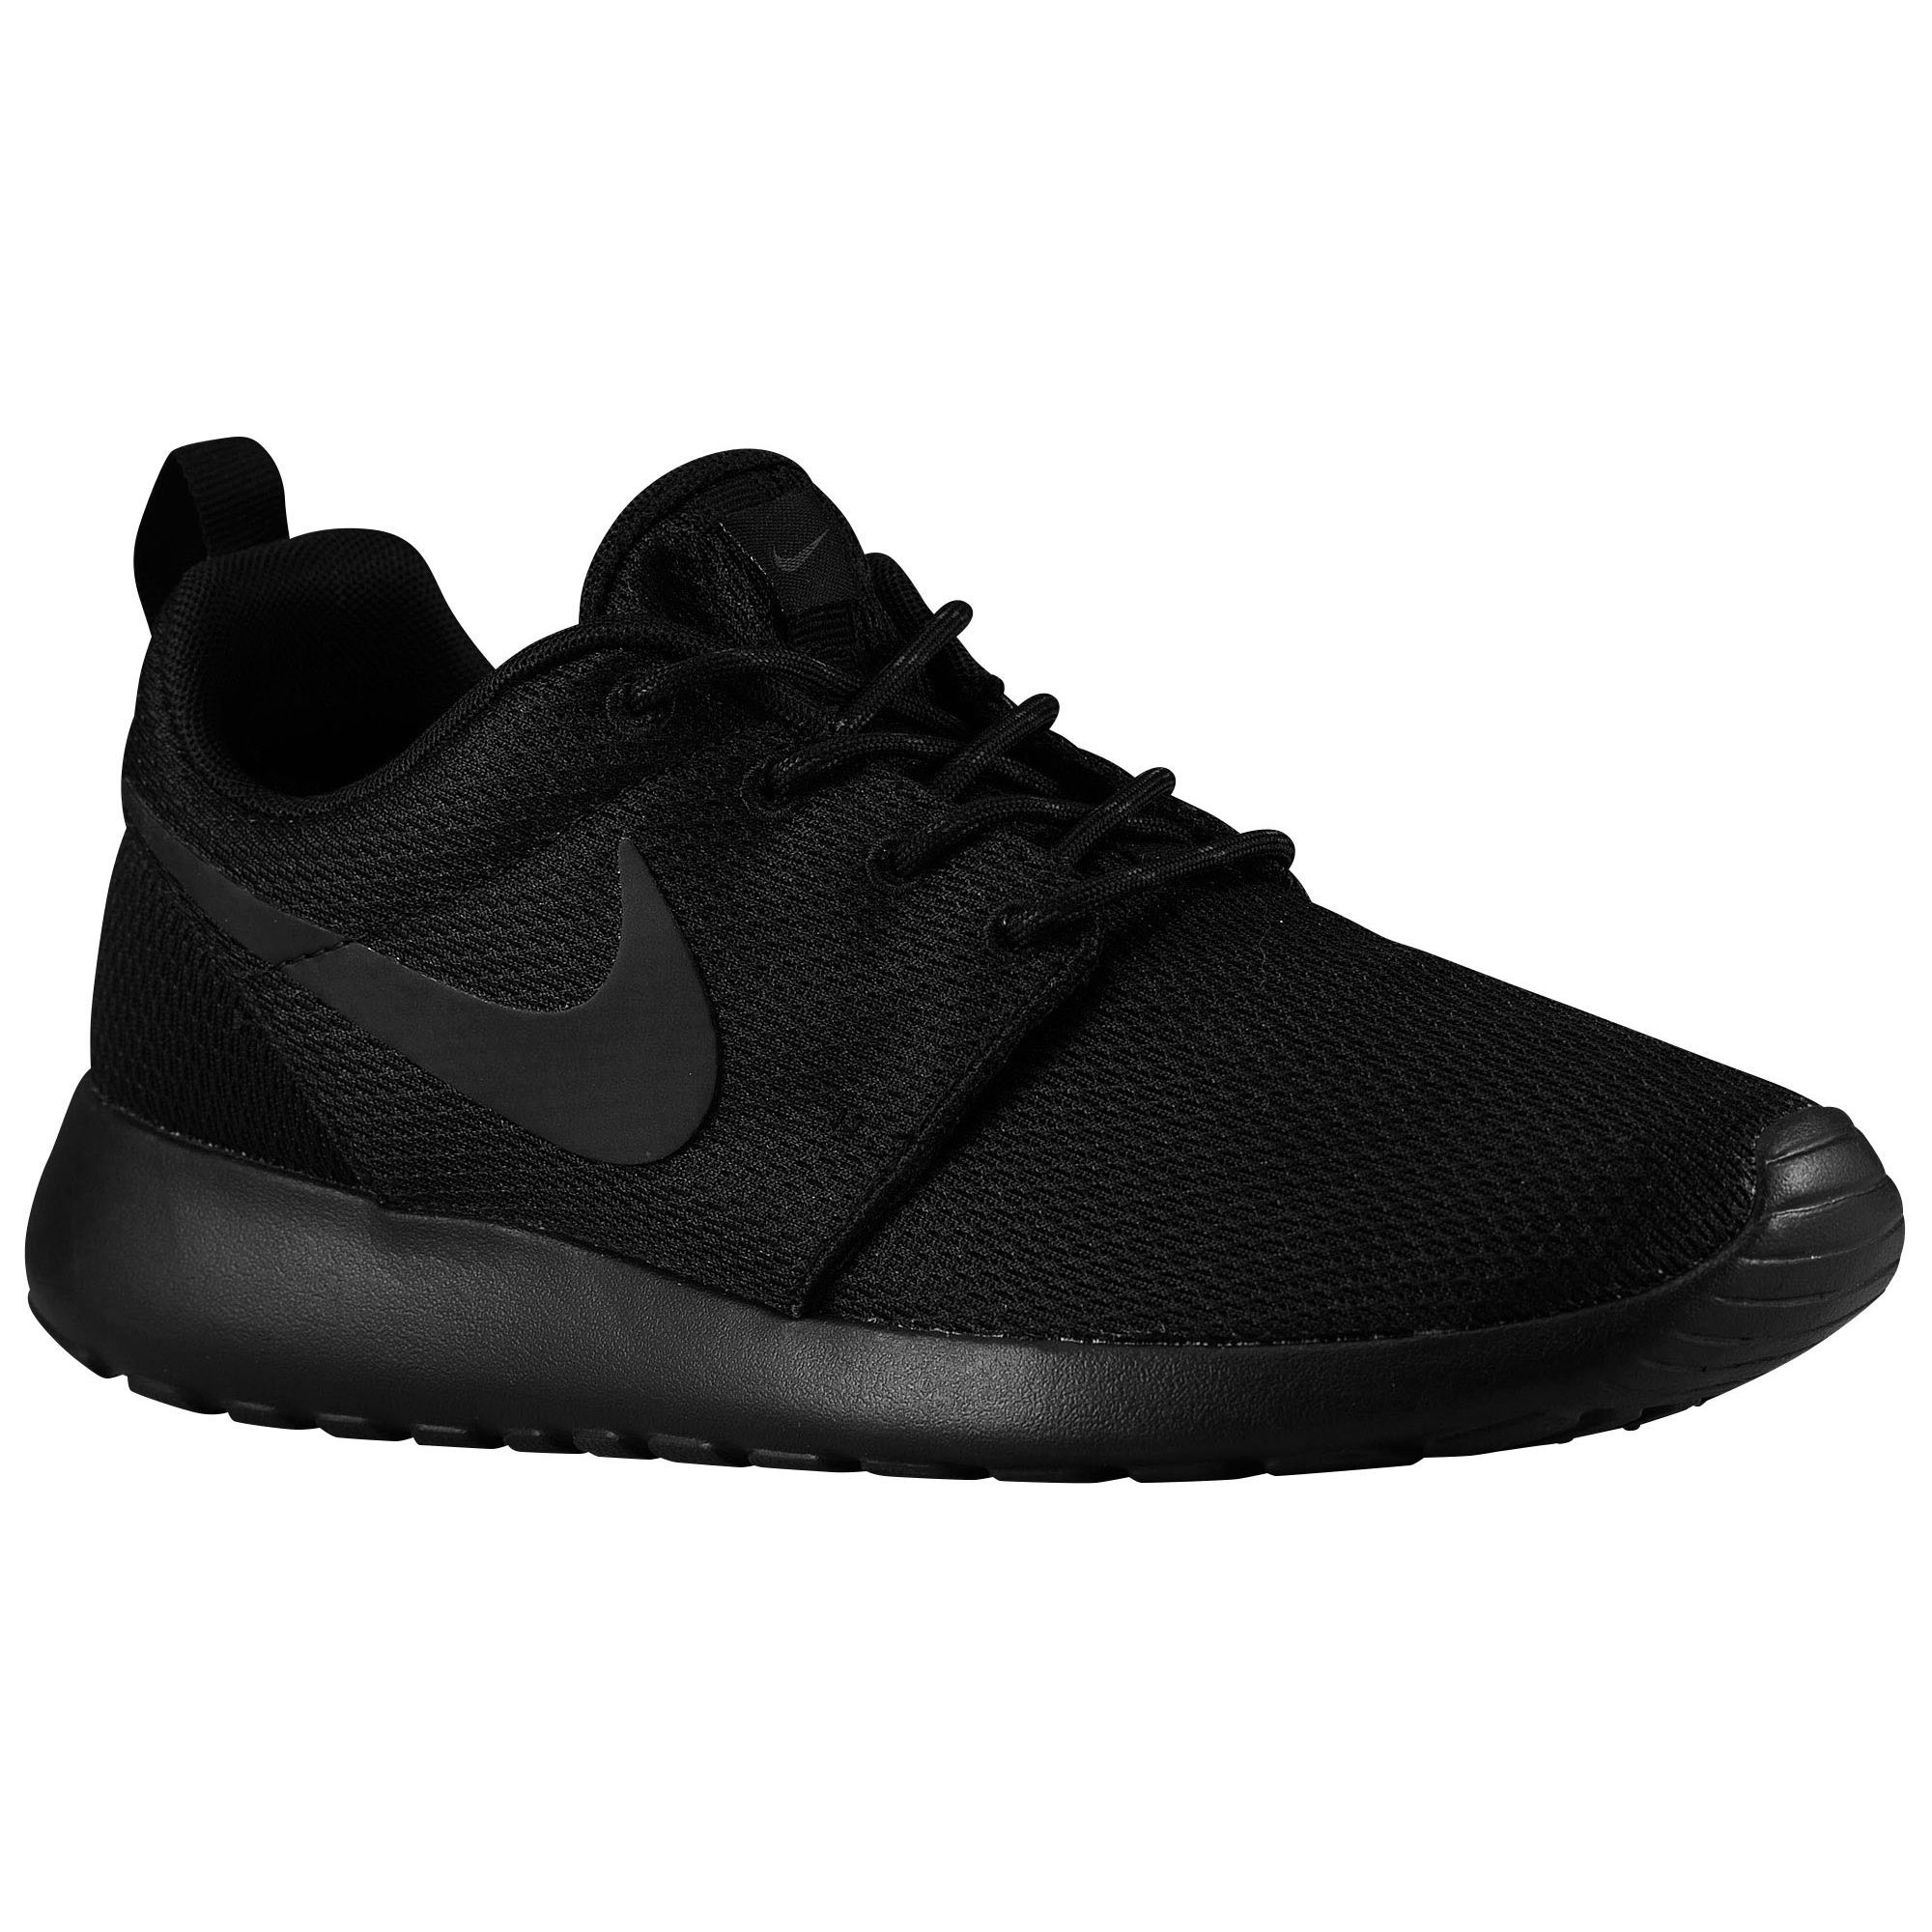 buy popular e8f34 a8c7c Nike Roshe Run - Women's - Shoes | My style | Sneakers nike ...